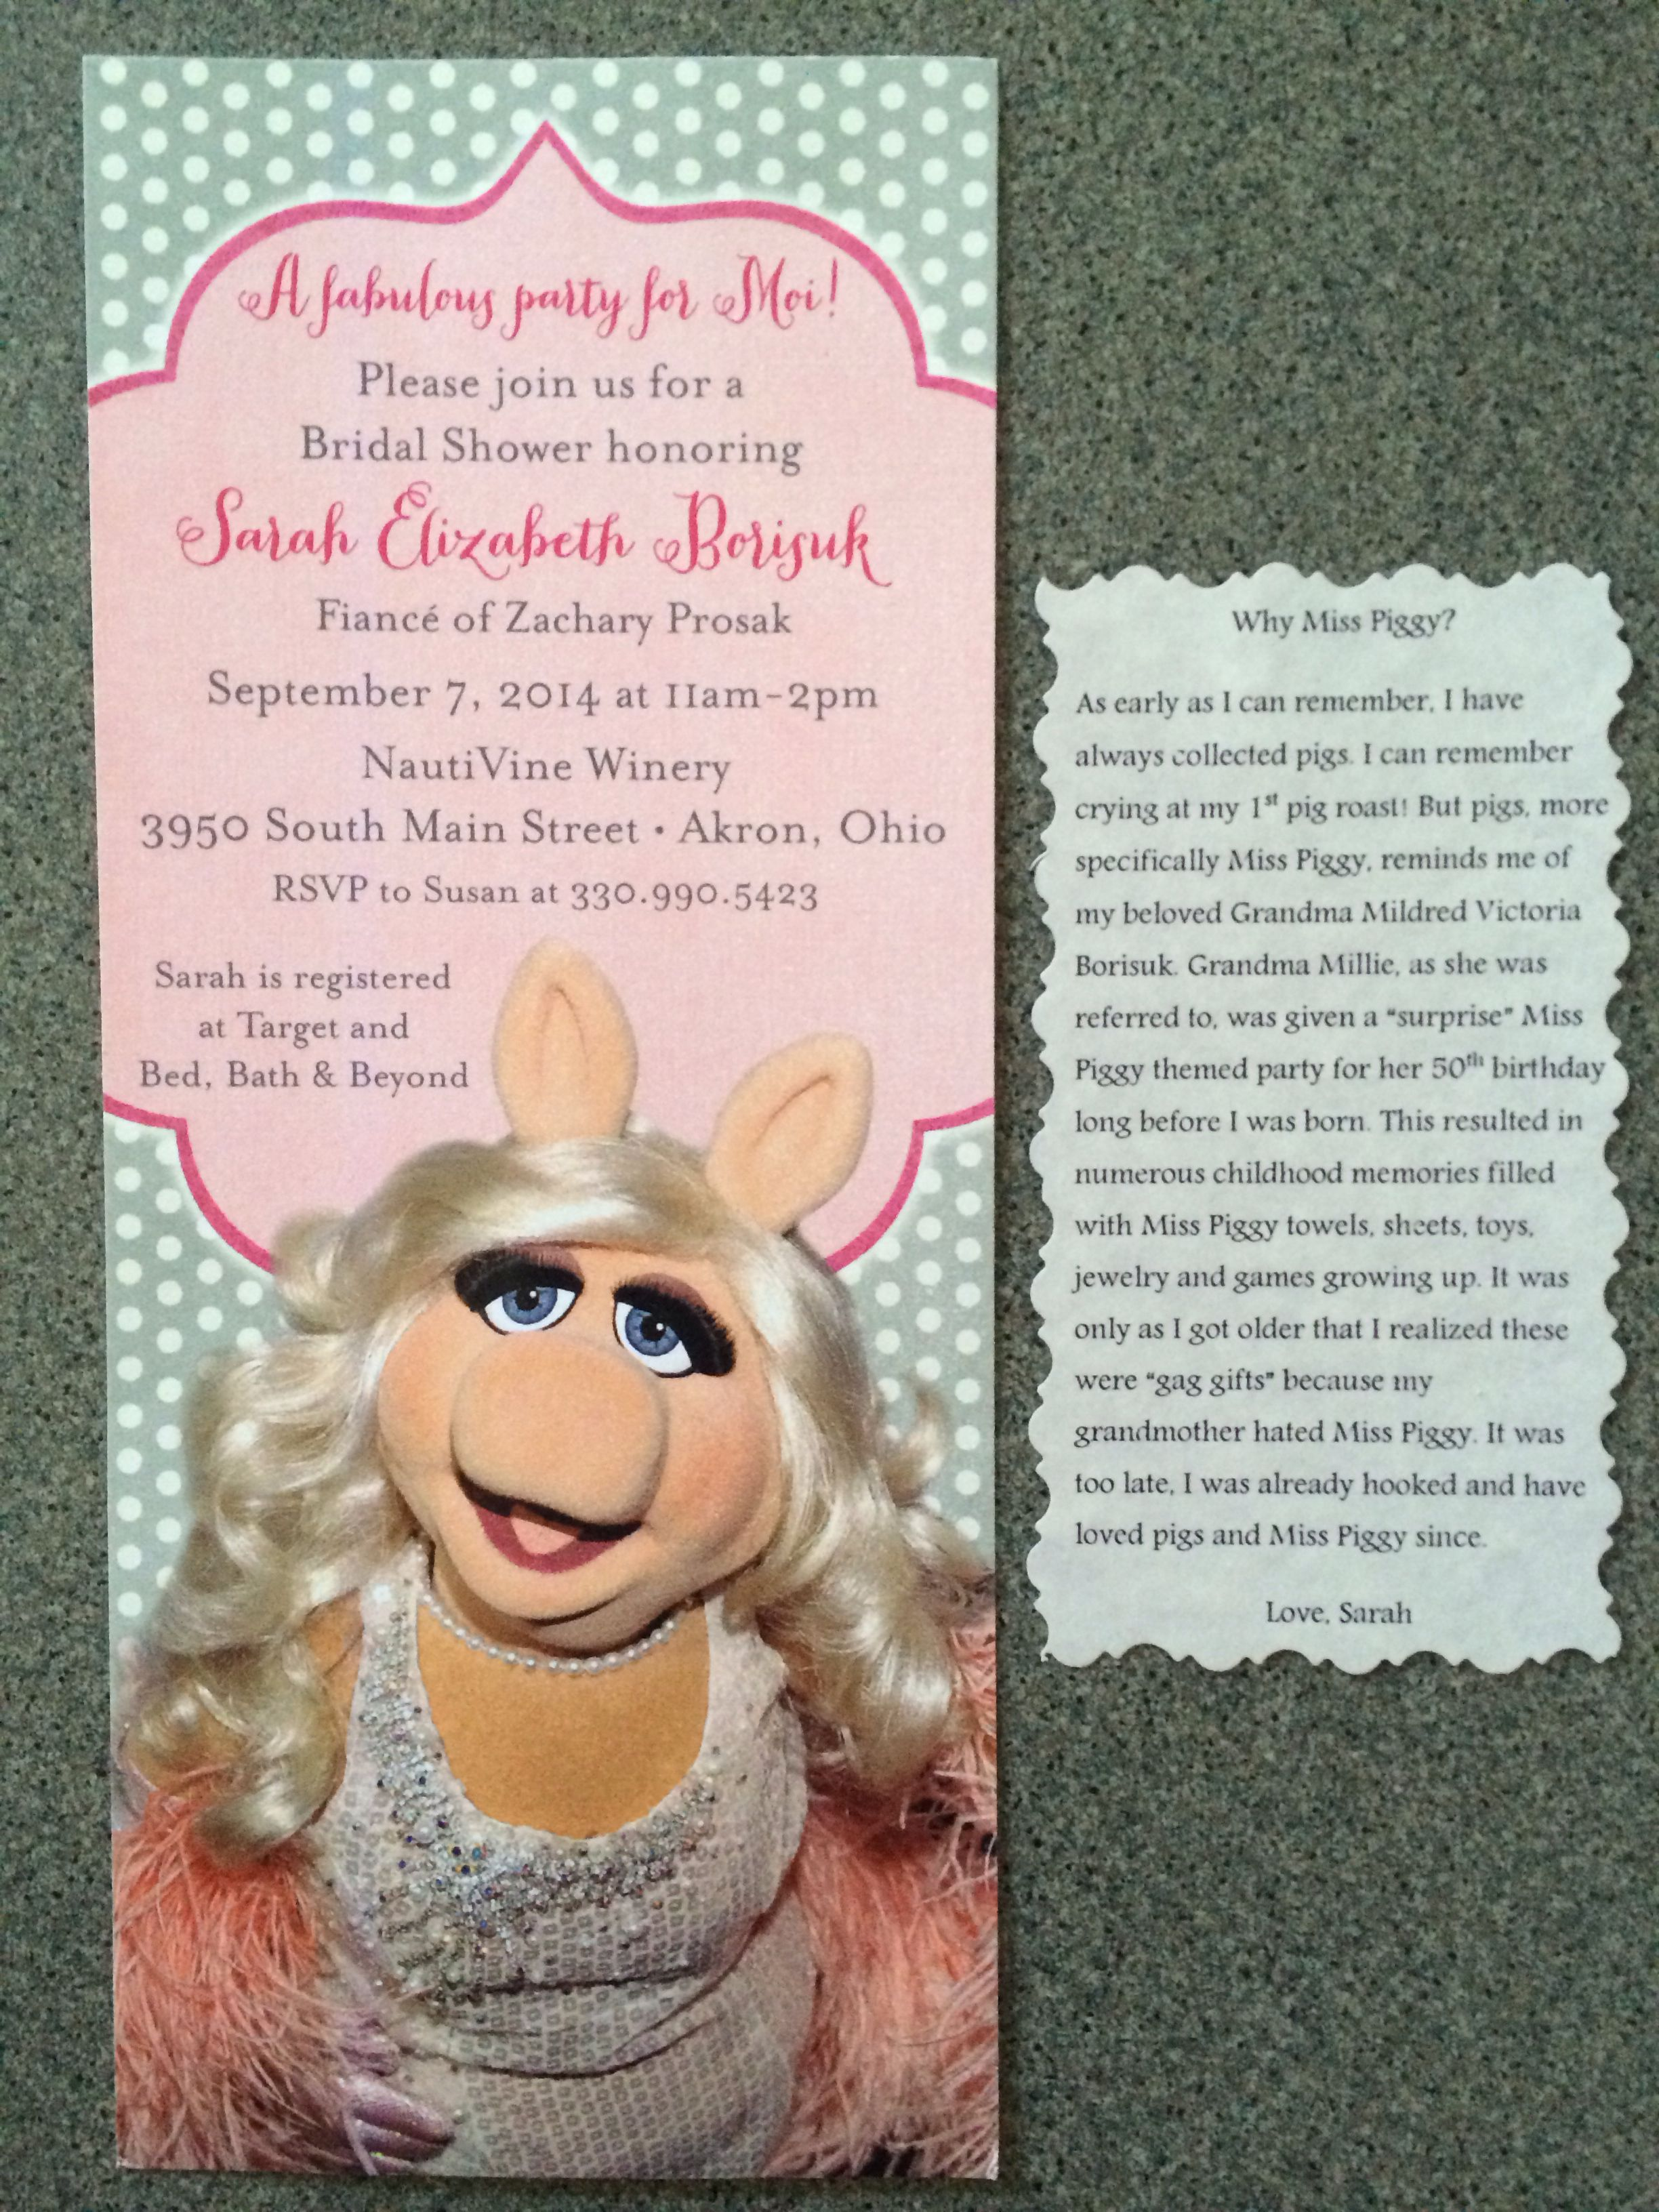 bridal shower invitation pictures%0A Miss piggy themed bridal shower invitations